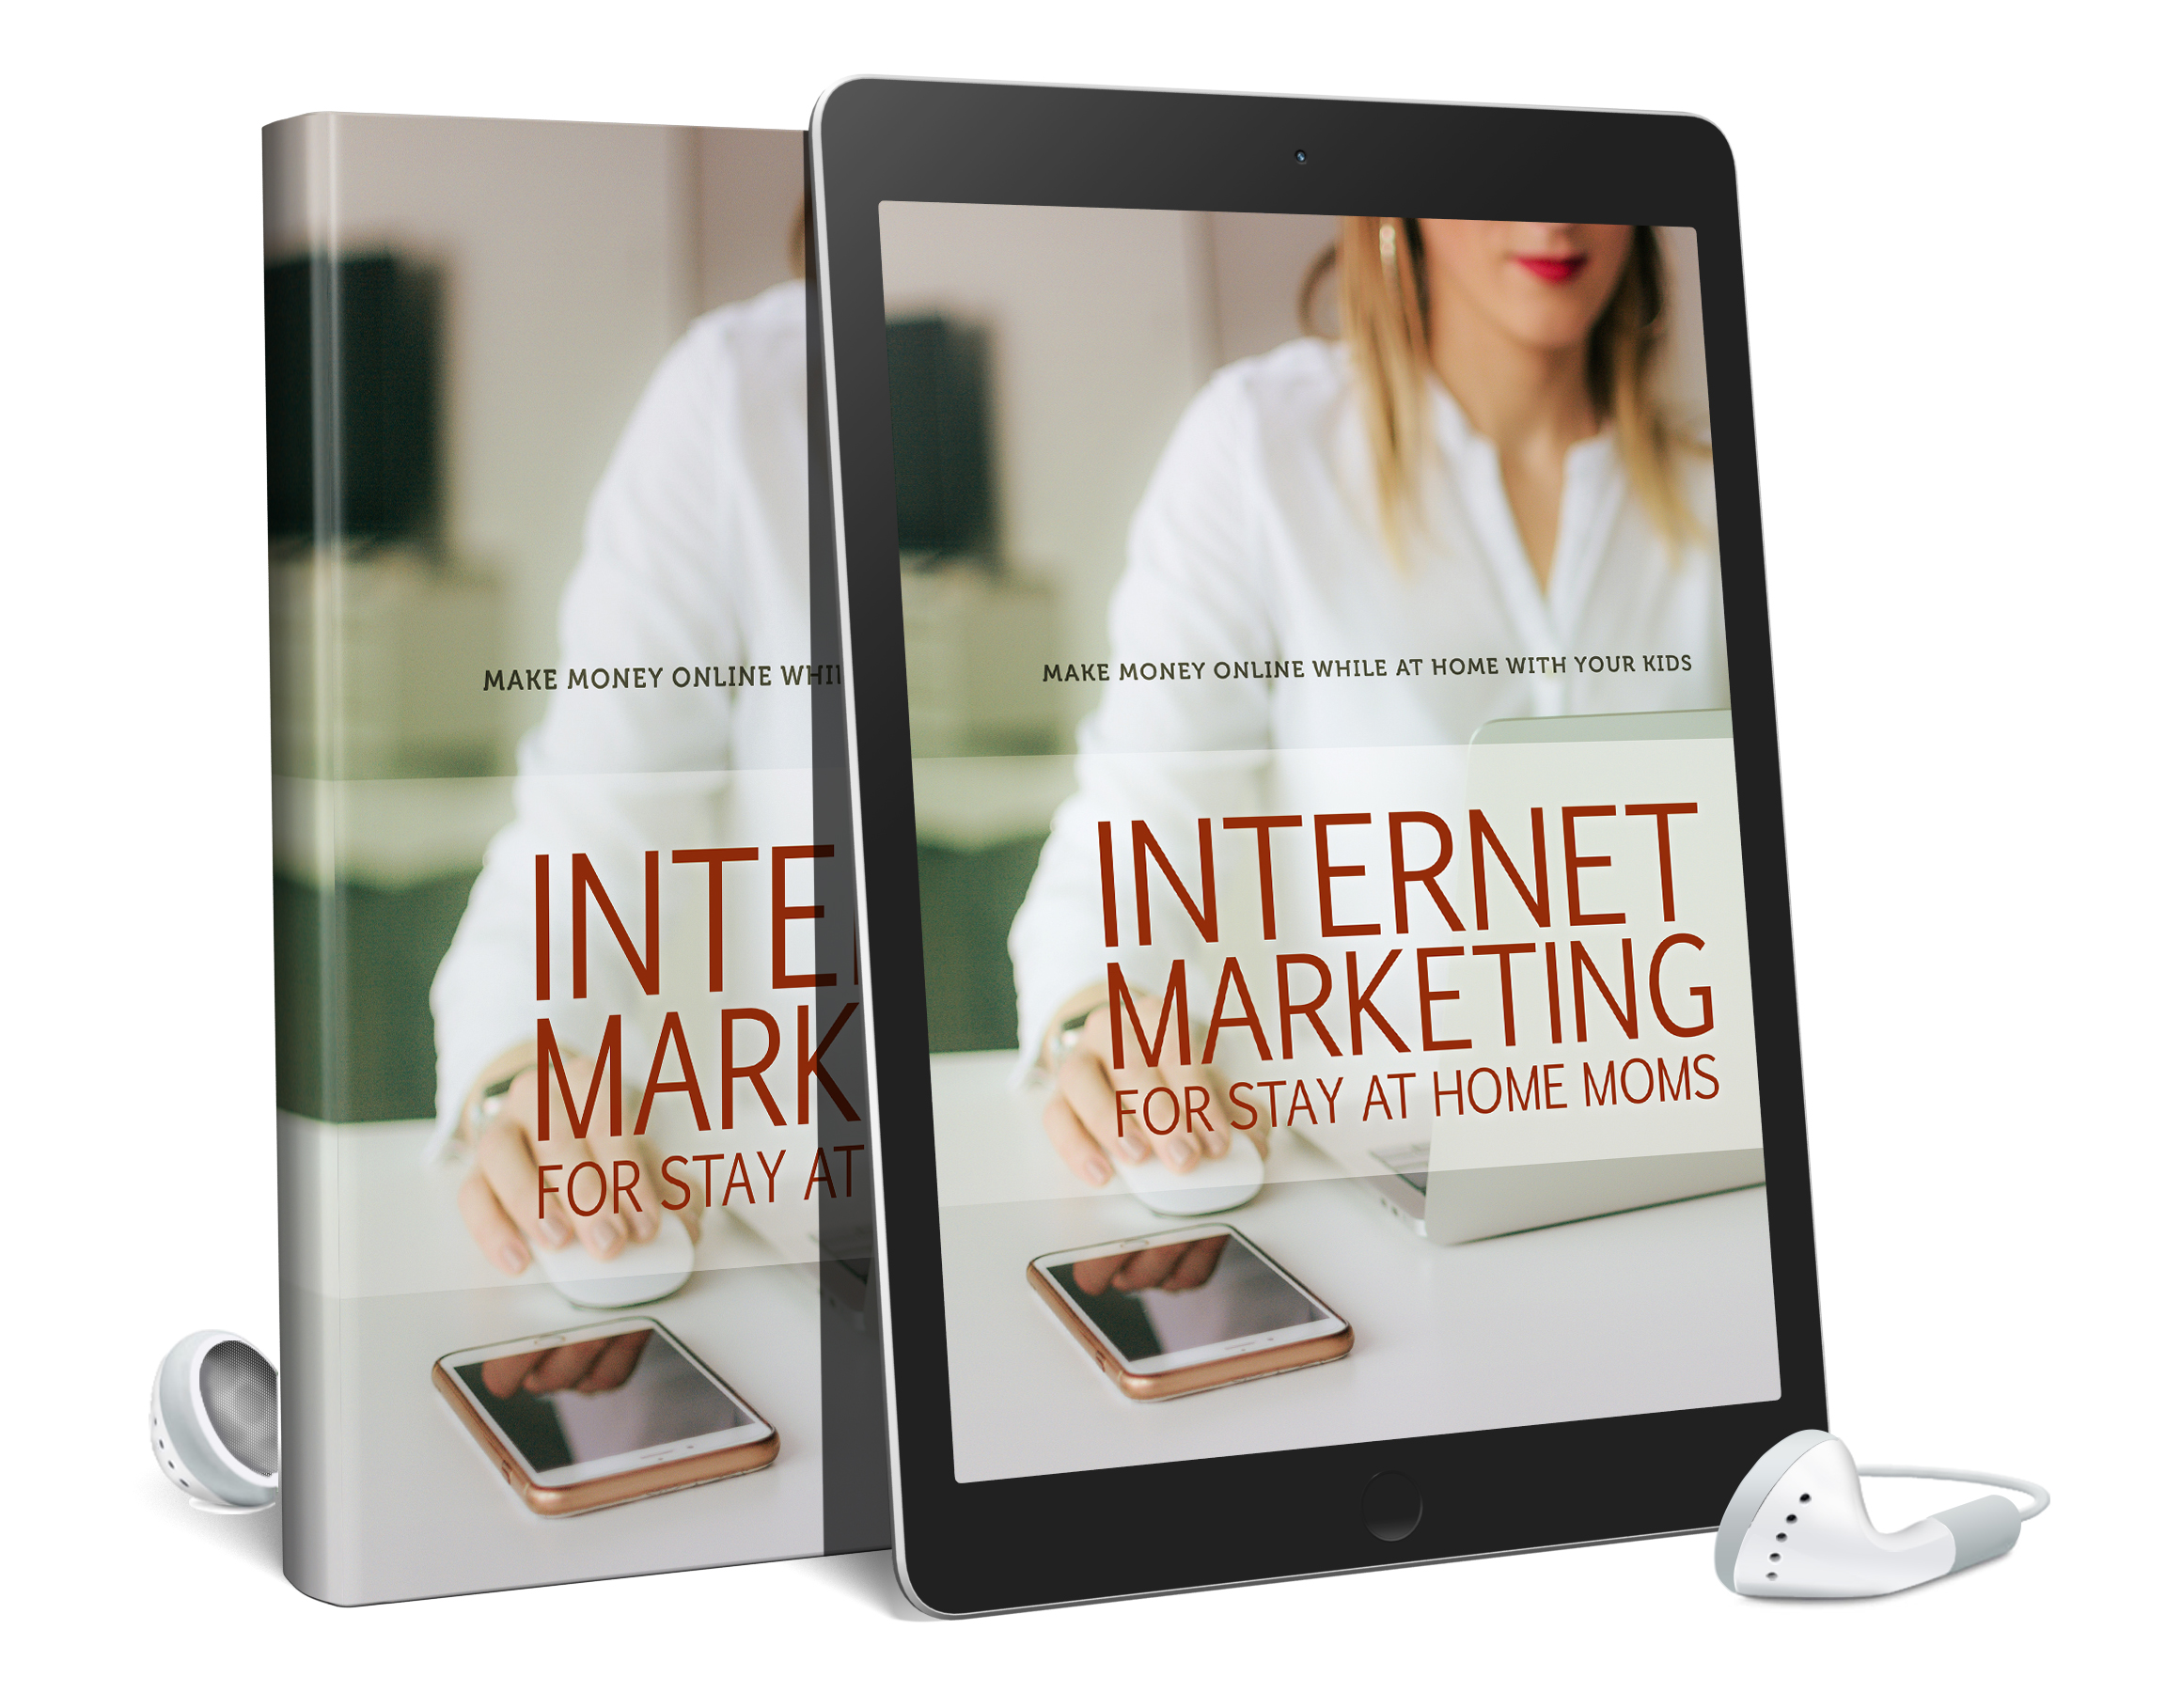 Internet Marketing For Stay At Home Moms AudioBook and Ebook